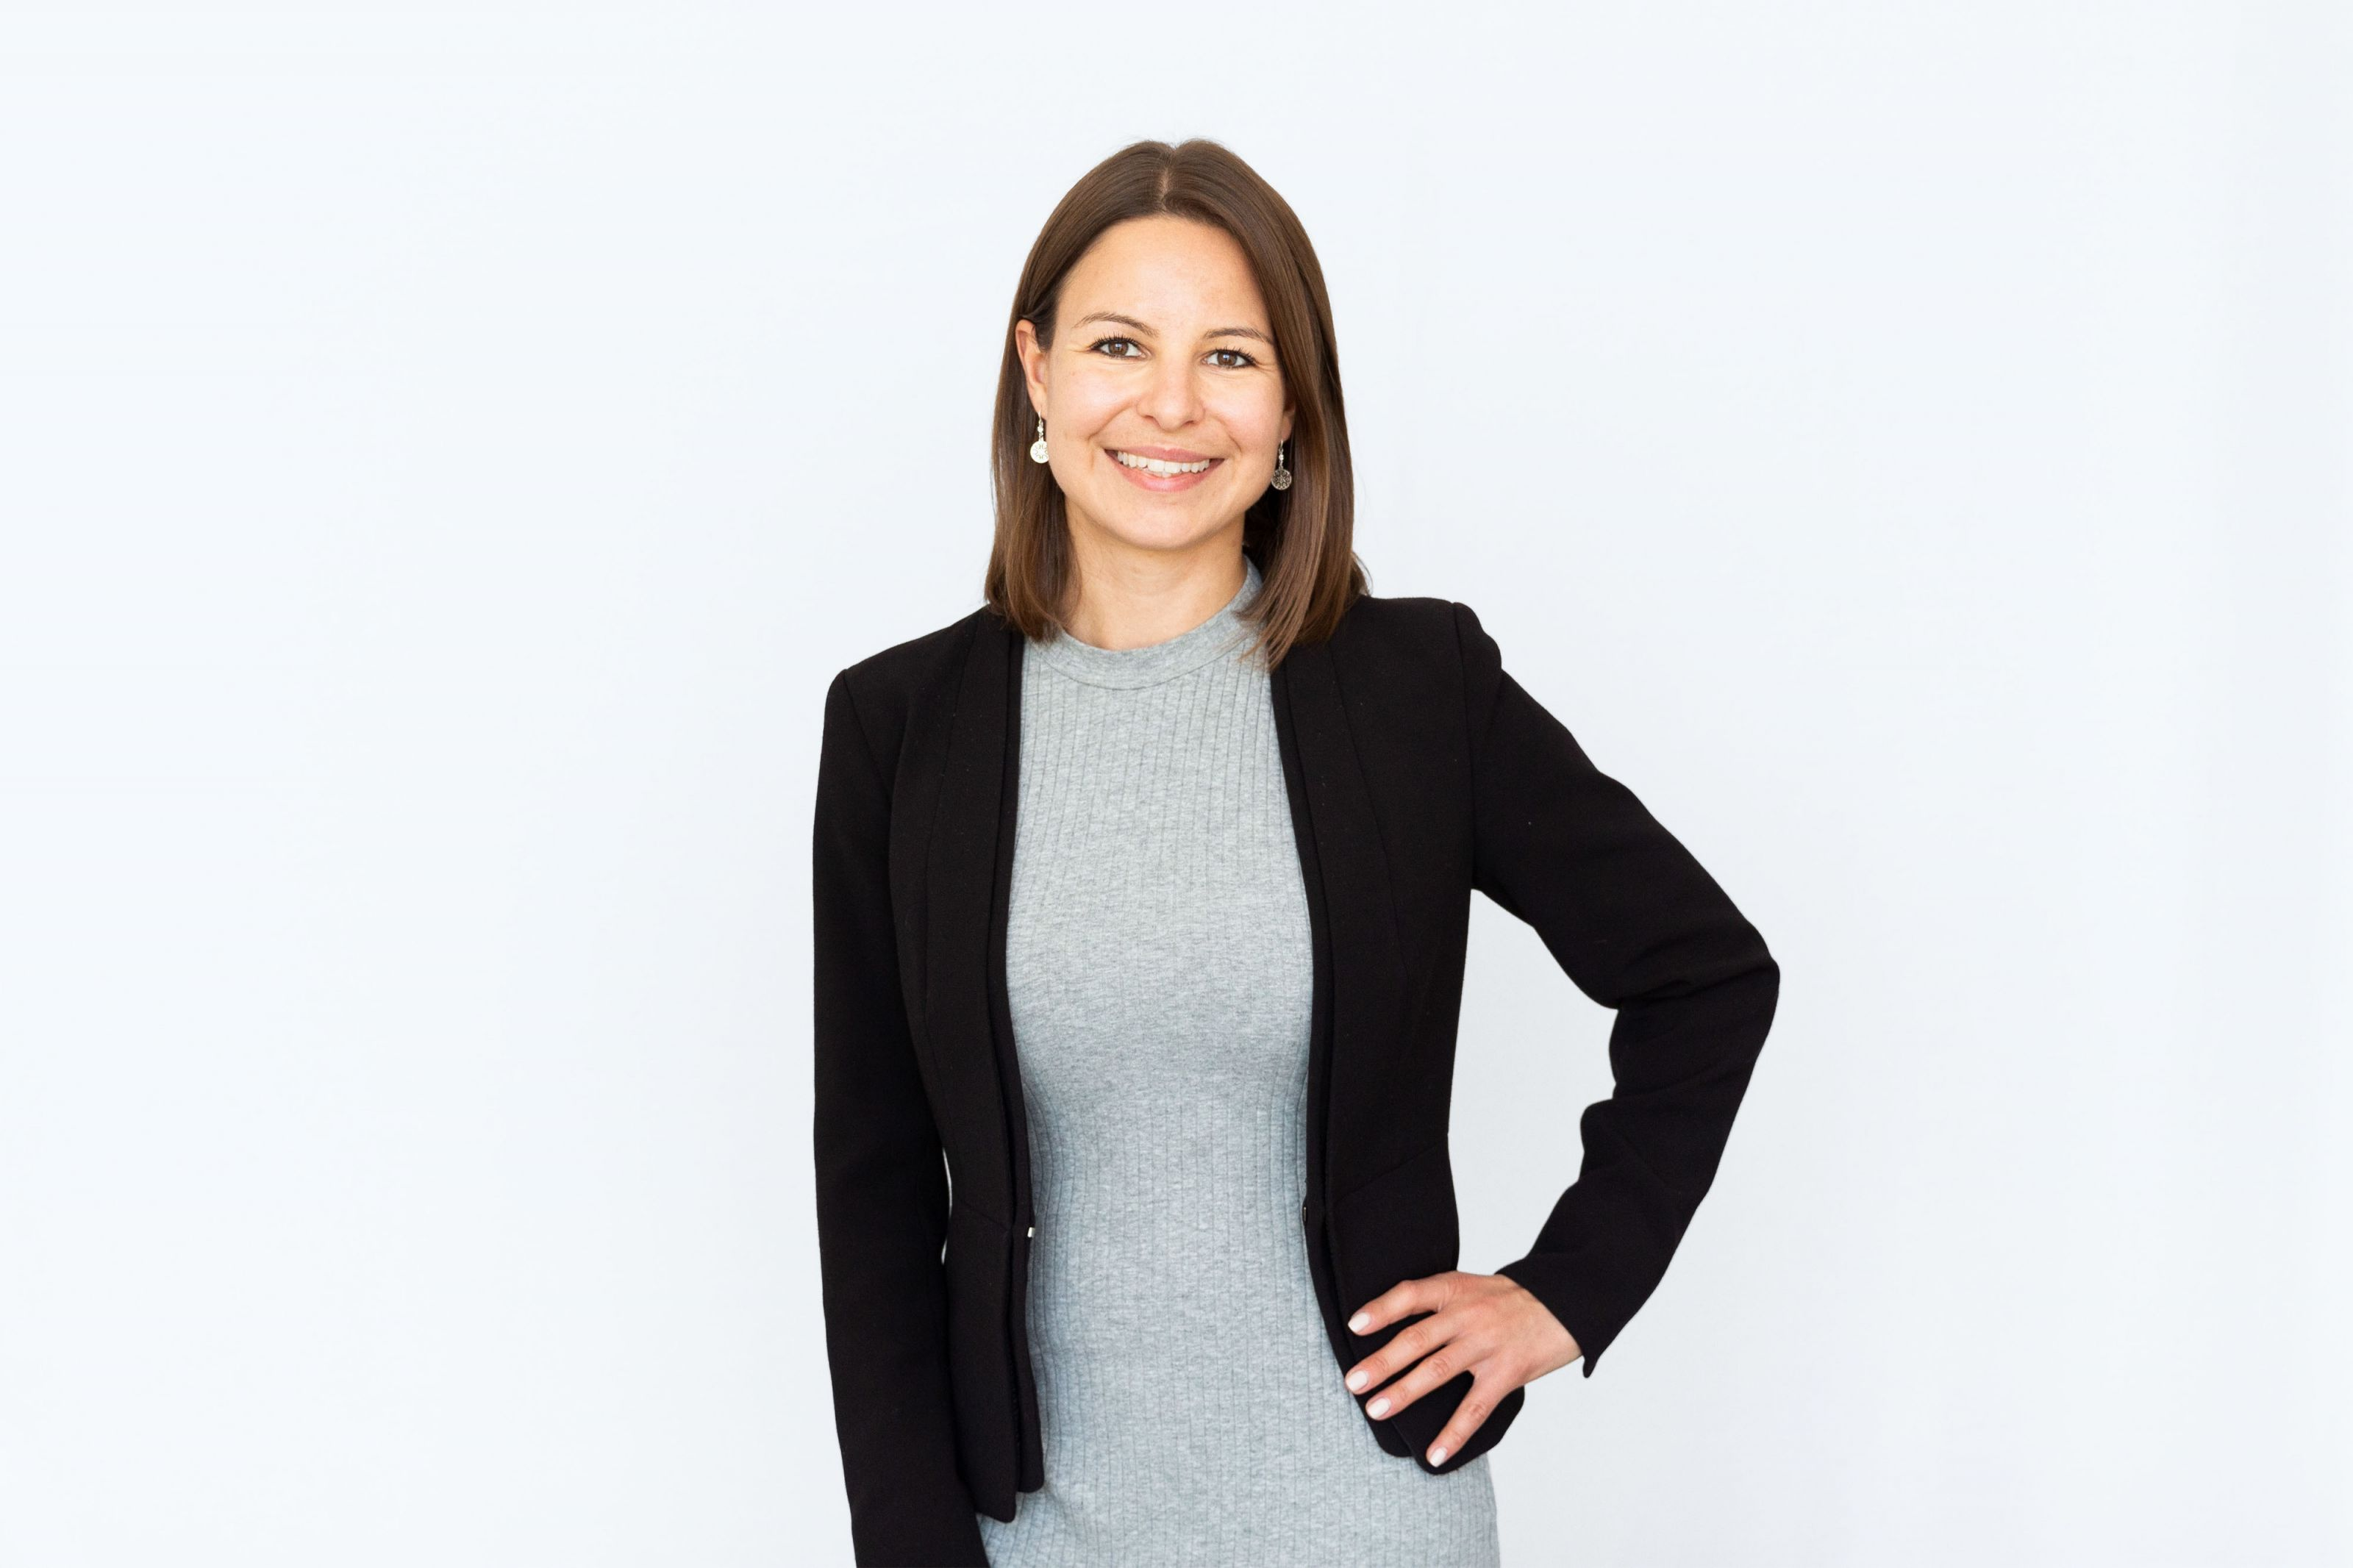 Nathalie Brescia ist Senior Marketing Manager (Events) bei Namics